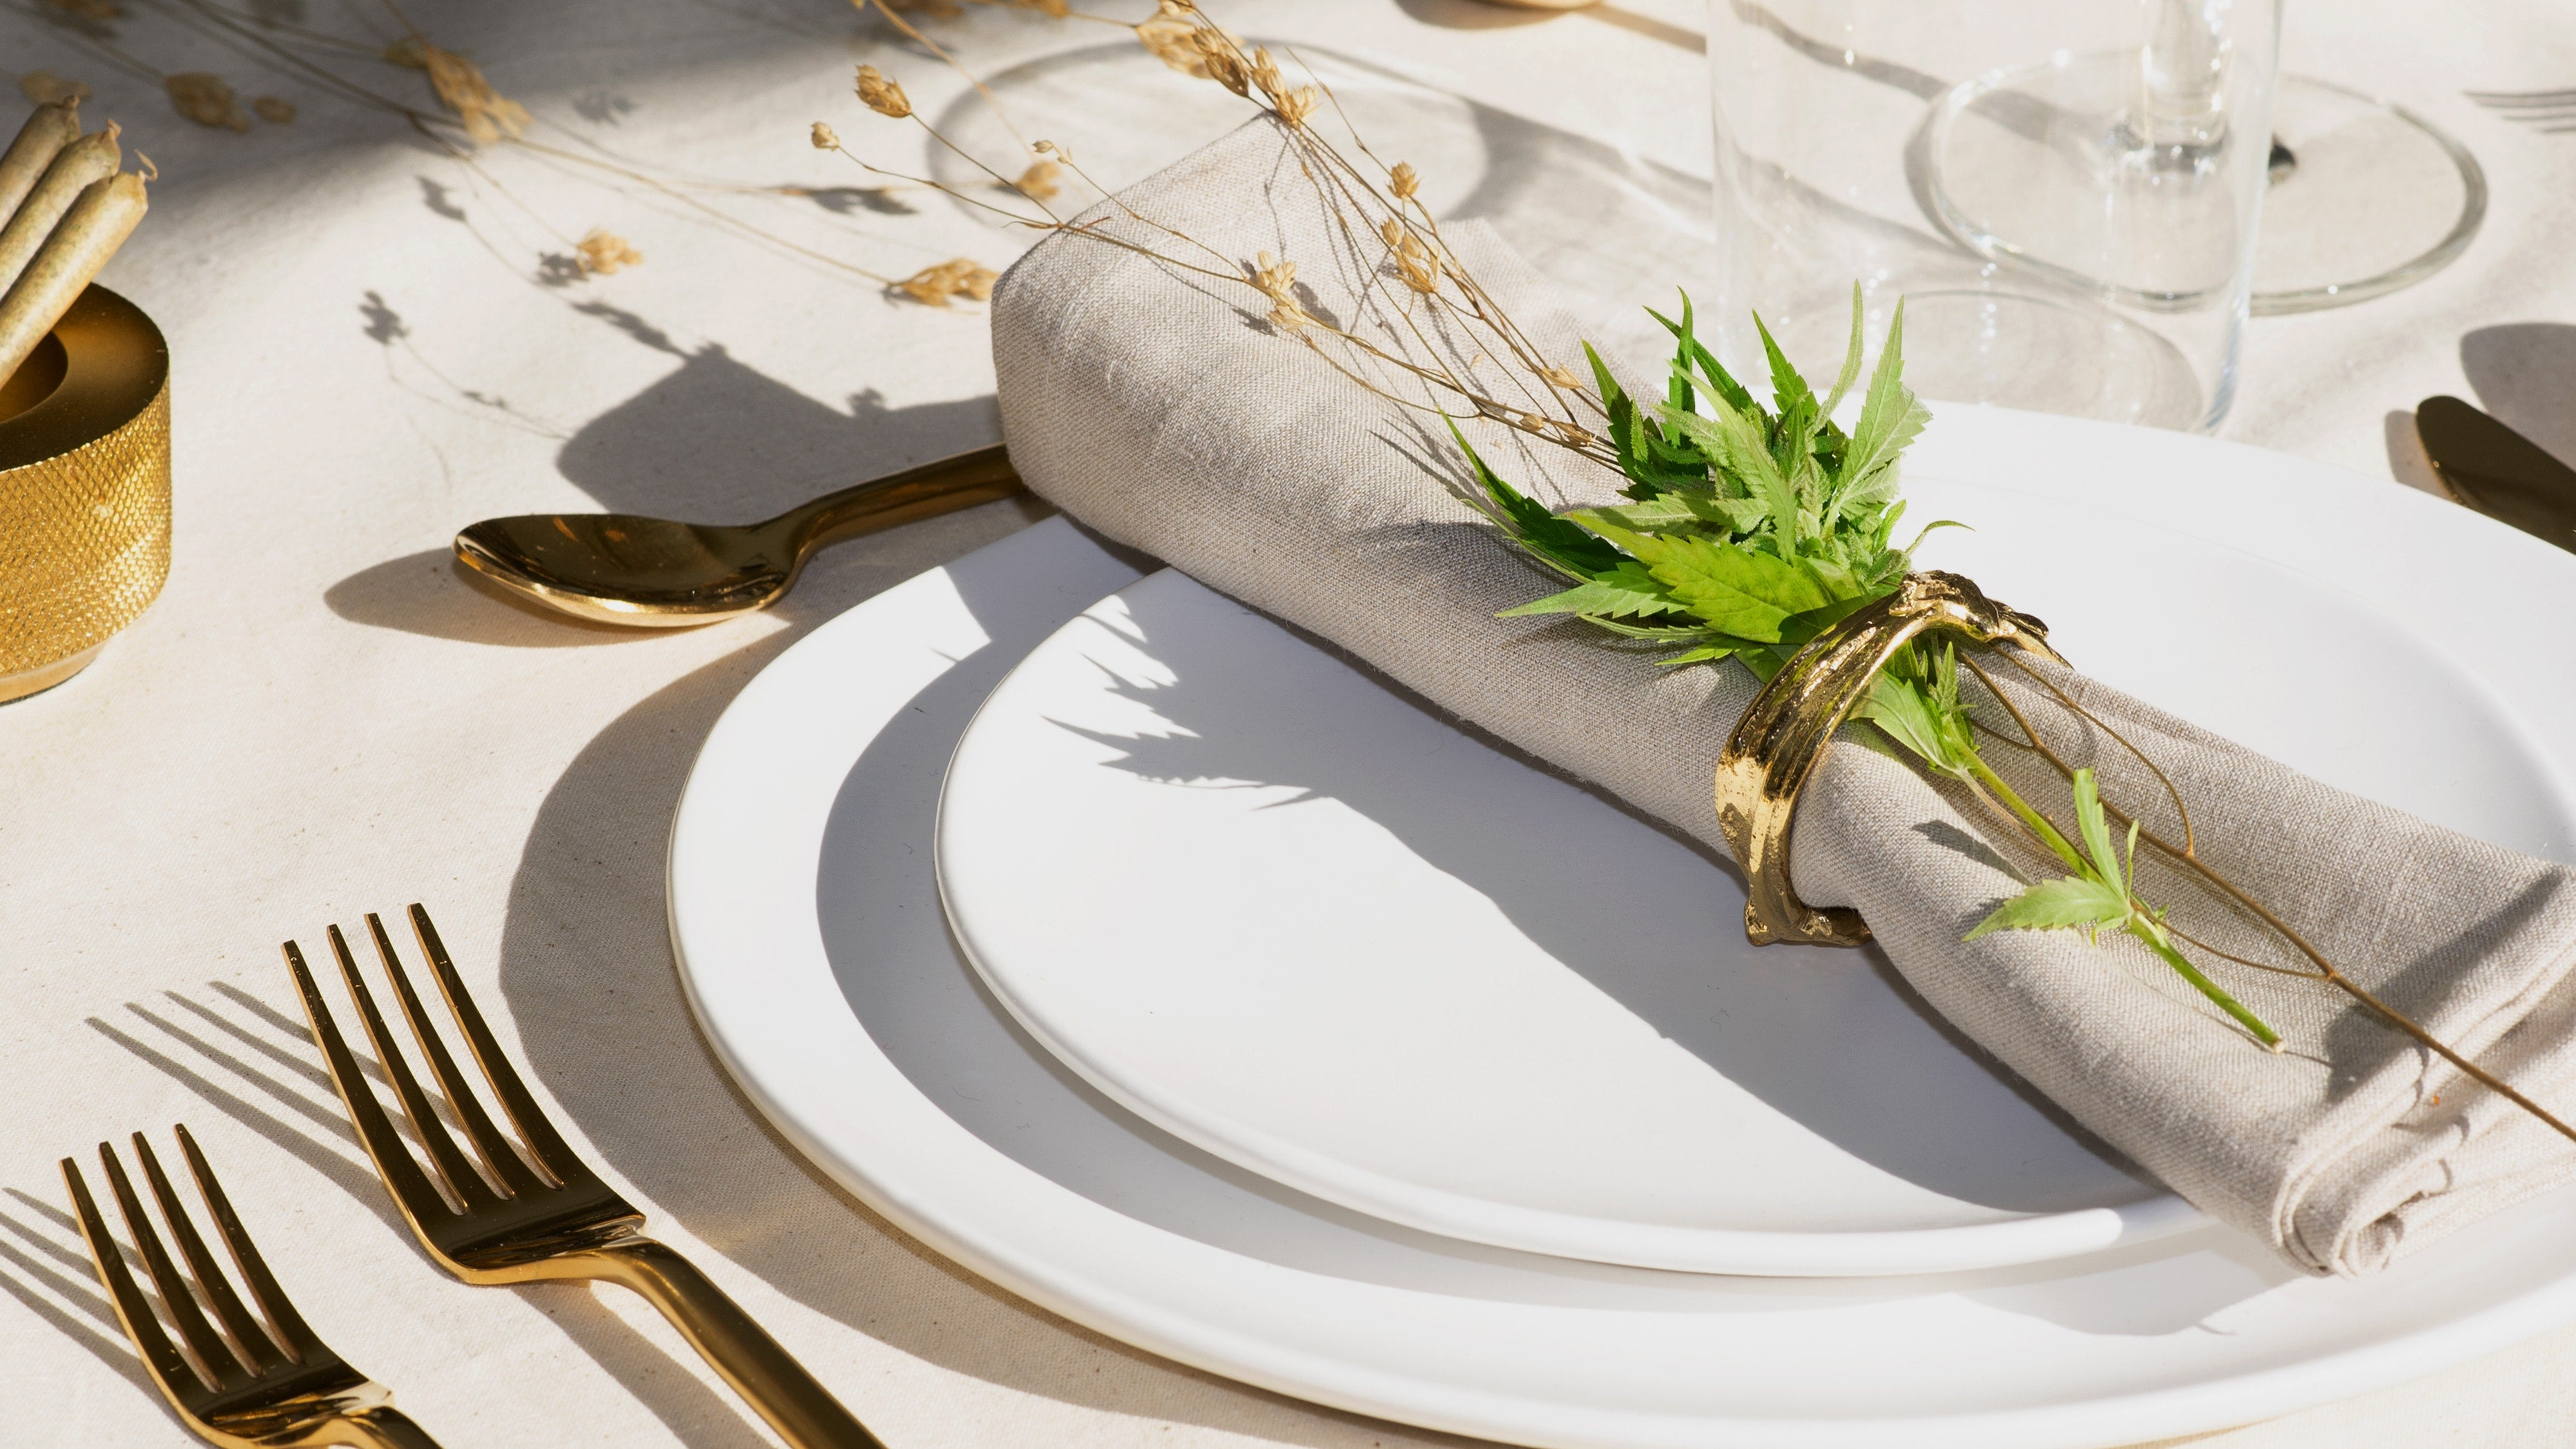 Beige napkin with cannabis leaf on it on top of two white plates. At table setting on beige table cloth with two gold forks beside the plates.